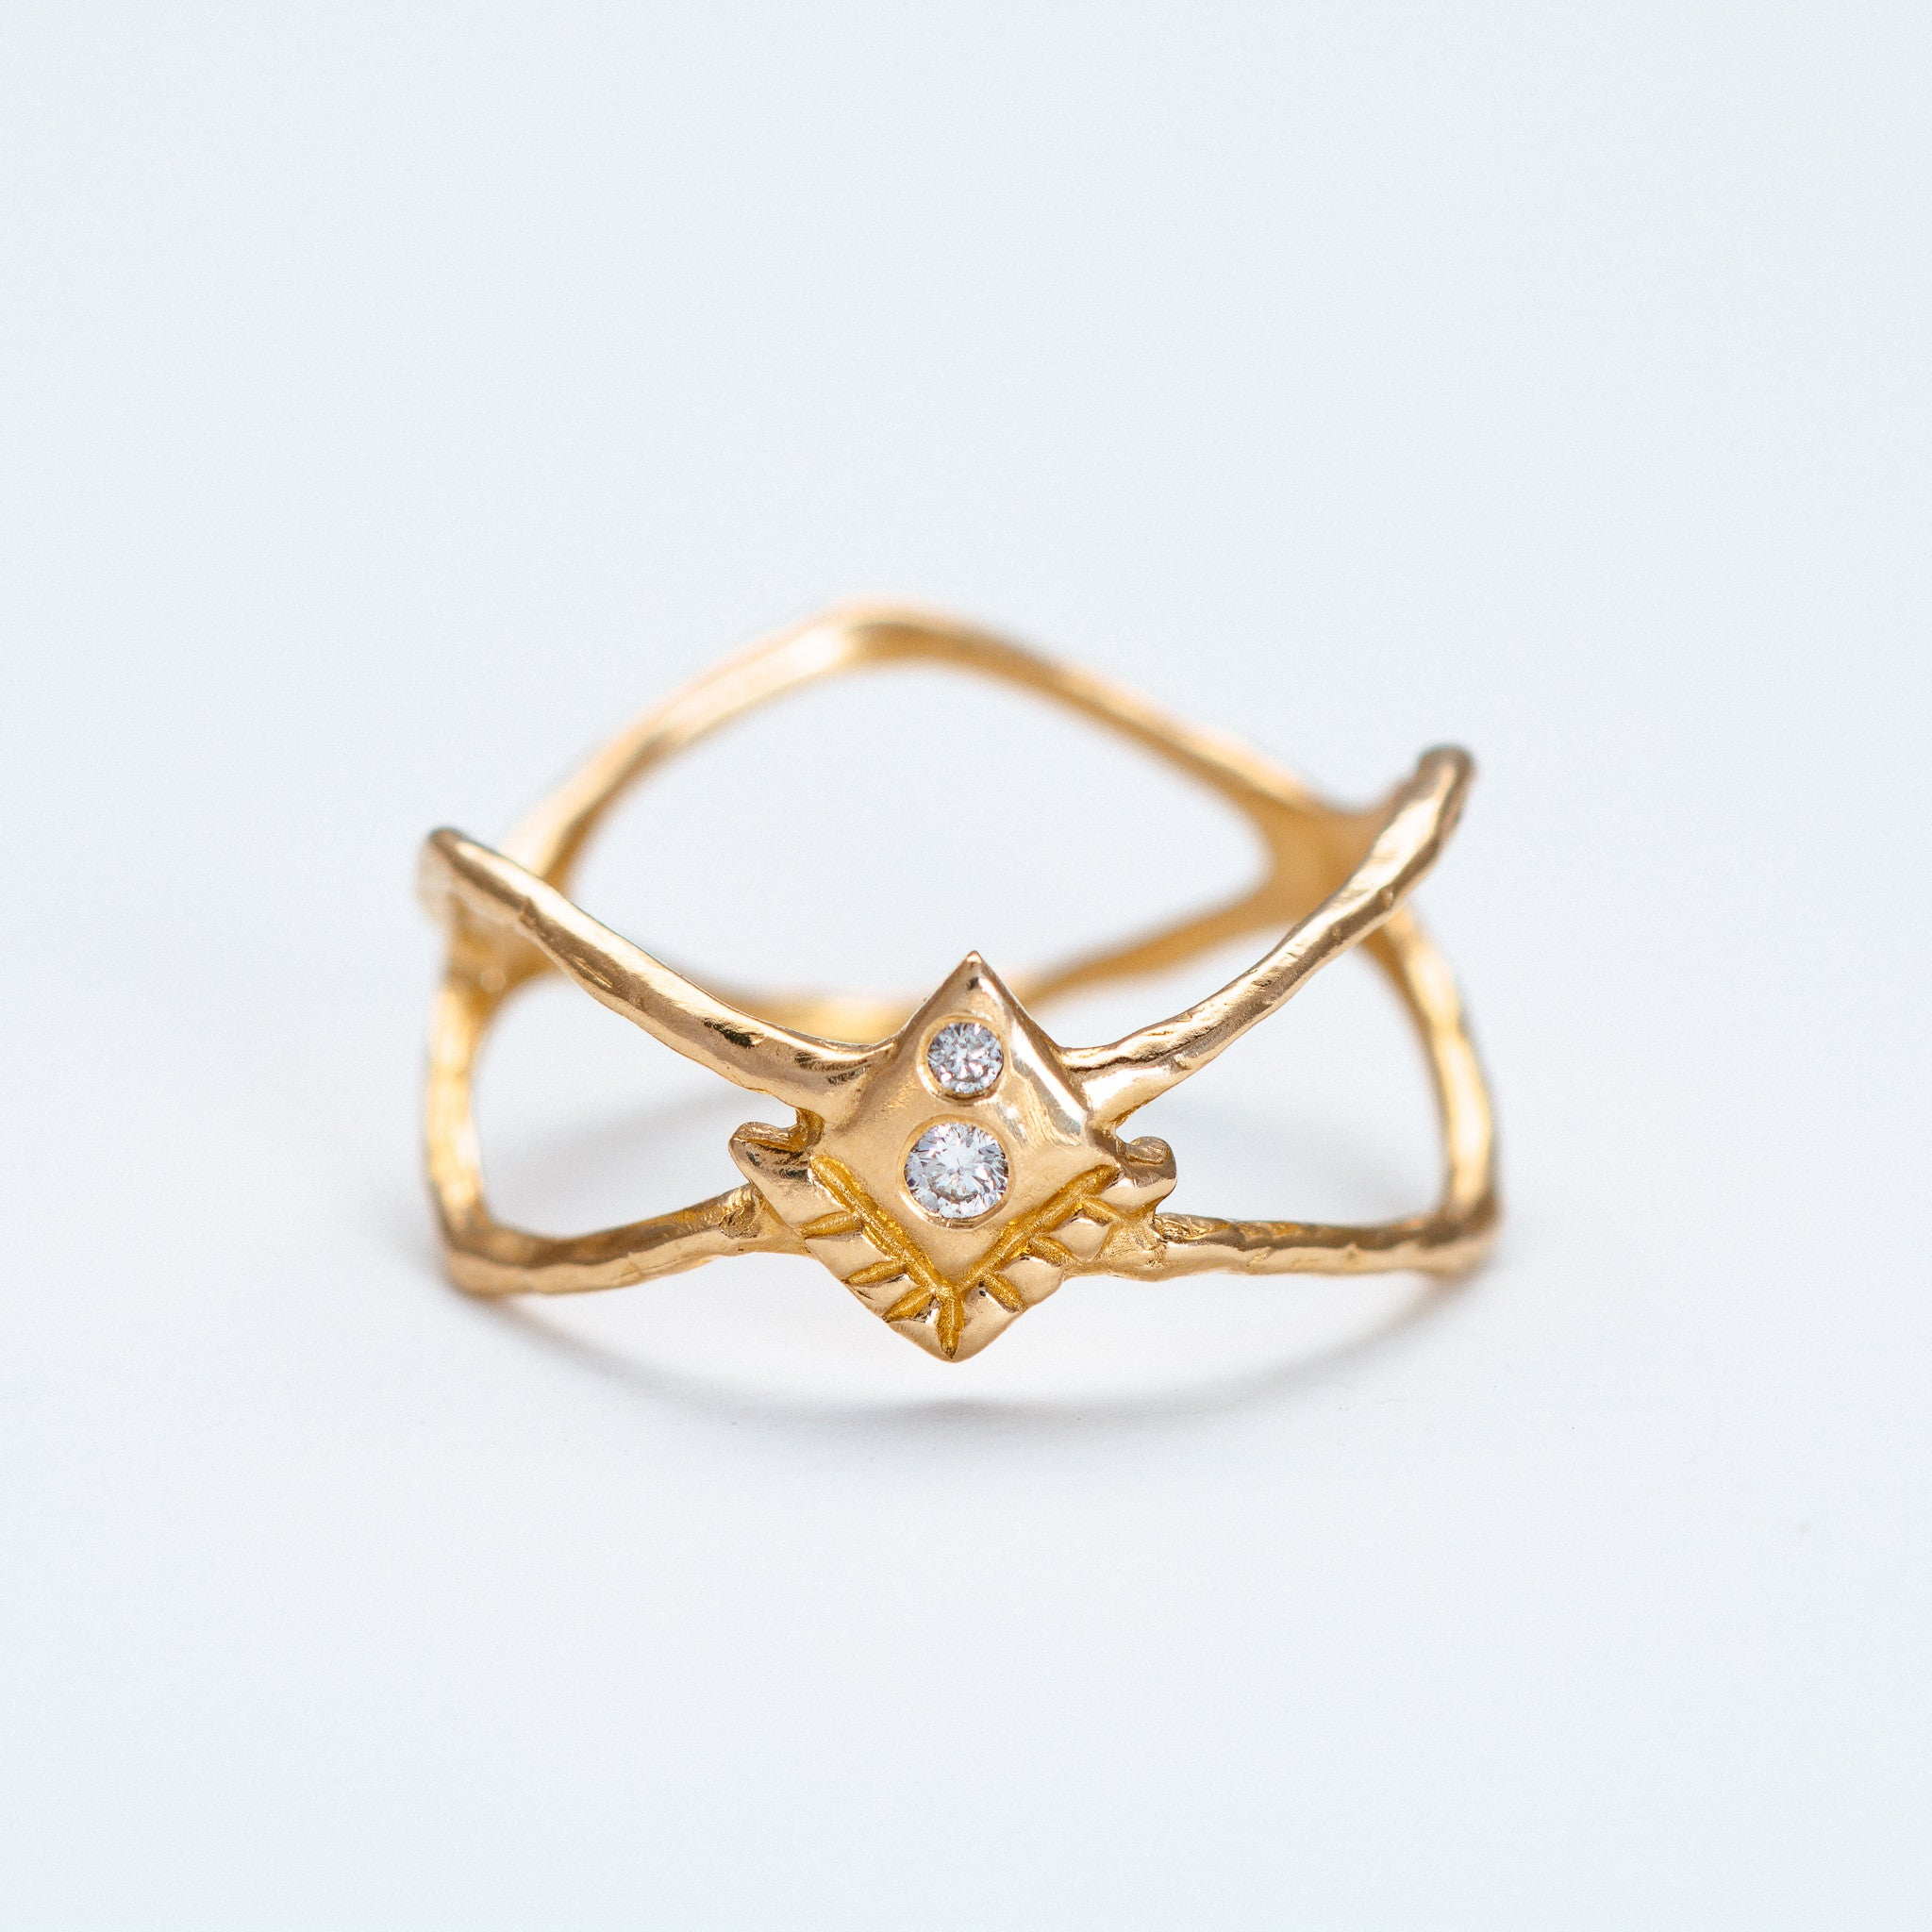 love engagement gold jewelers divine of goddess features and femininity ishtar rings amazing unique rose kay an